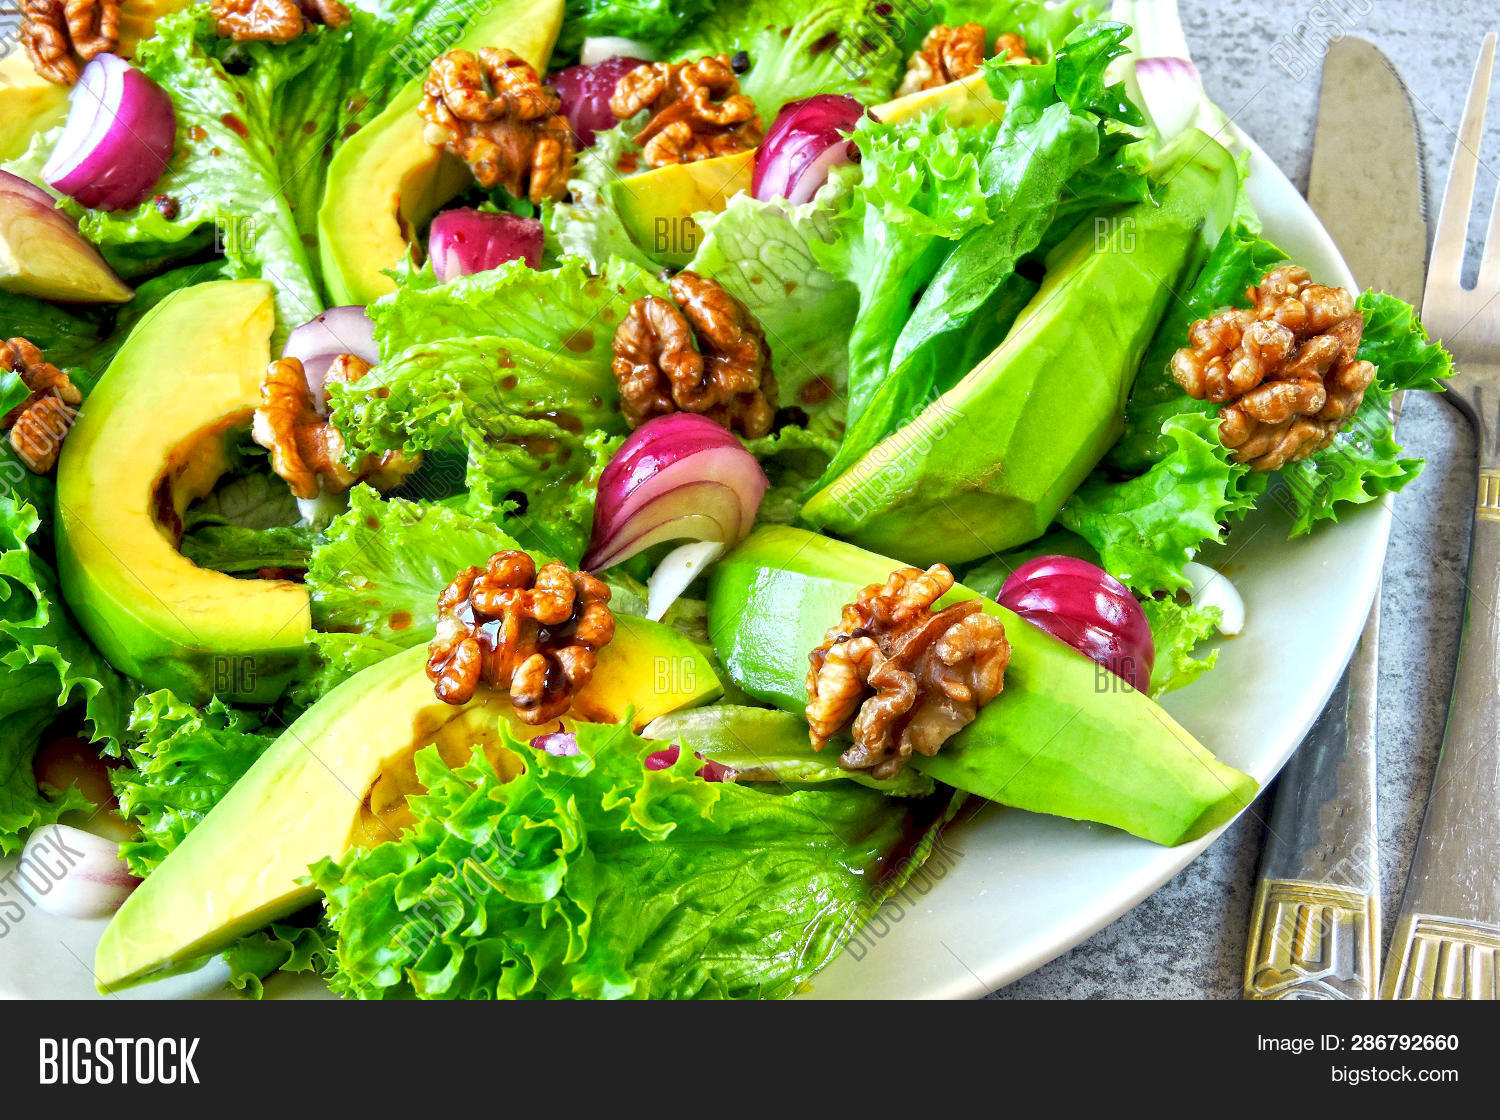 appetizer,avocado,background,blue,breakfast,delicious,diet,dieting,dinner,dish,eating,fitness,food,fresh,freshness,fruit,gourmet,green,healthy,idea,ingredient,leaf,lettuce,lunch,meal,nutrition,nutritious,oil,onion,organic,pepper,plate,preparation,rustic,salad,seasoning,snack,summer,super,useful,vegan,vegetable,vegetarian,walnut